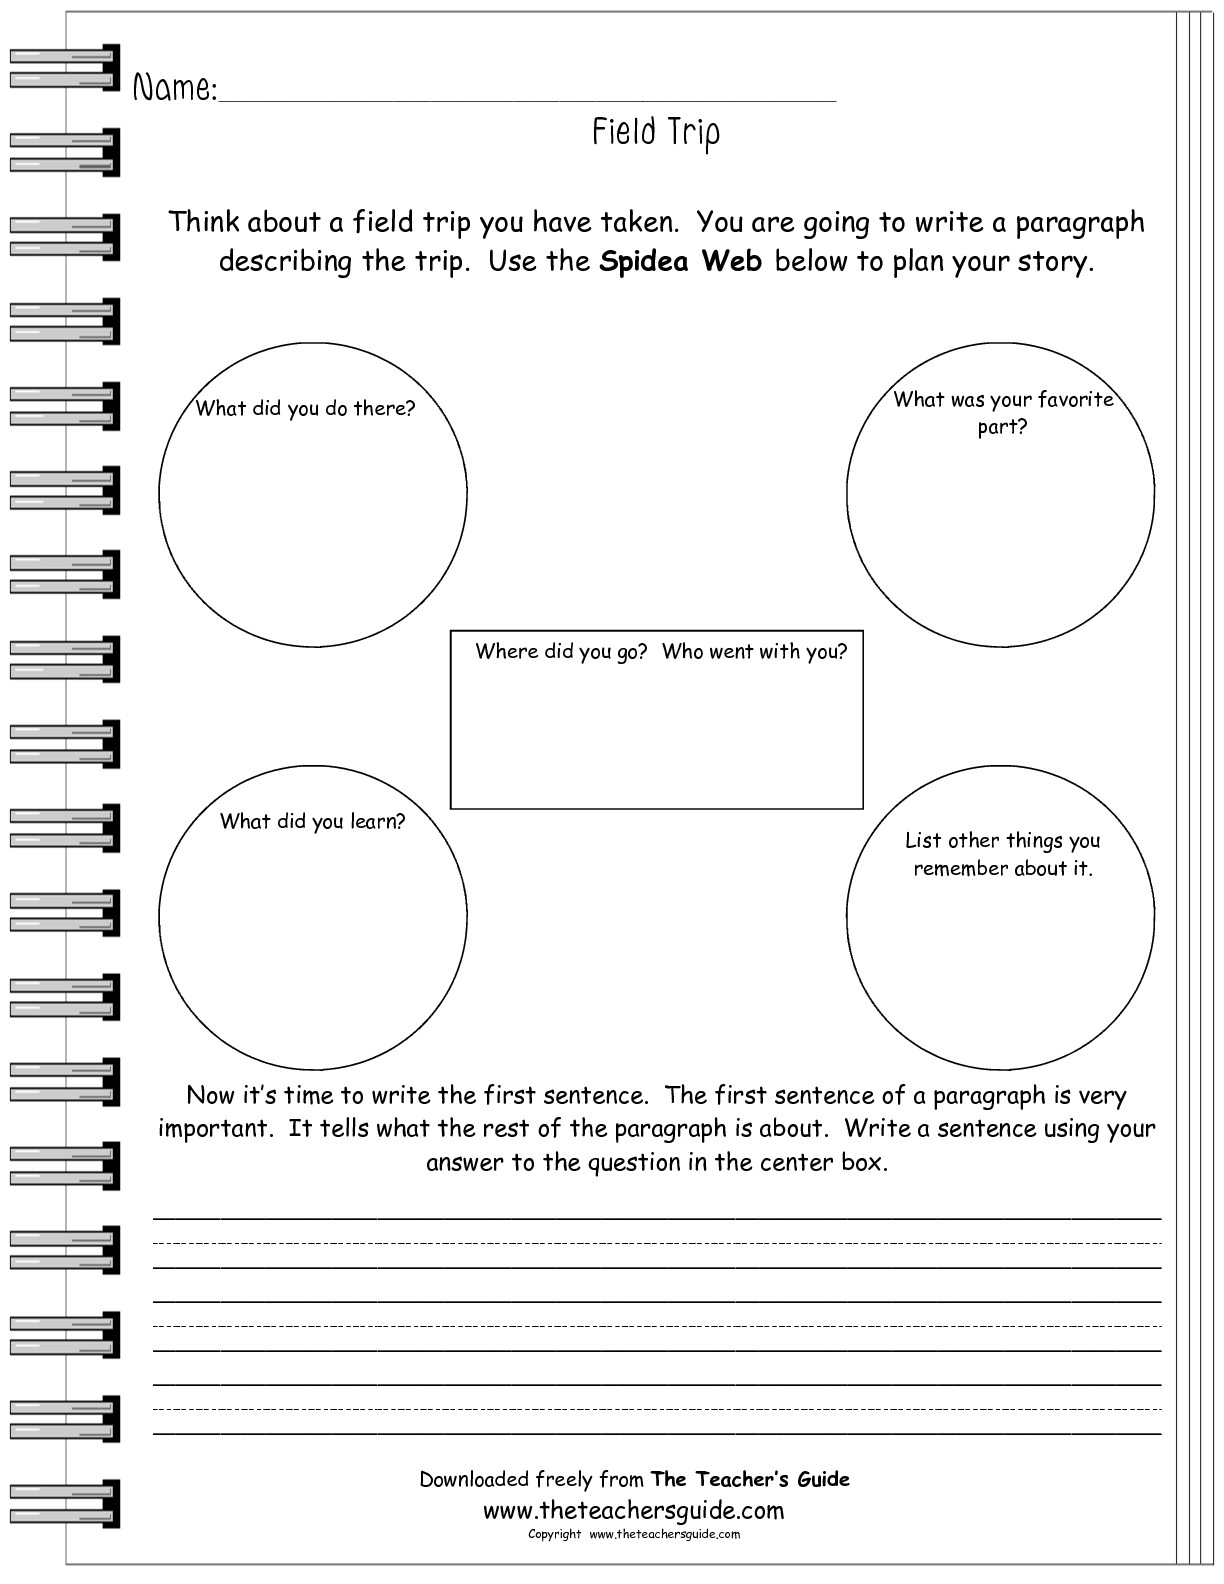 18 Best Images Of Field Trip Reflection Worksheet